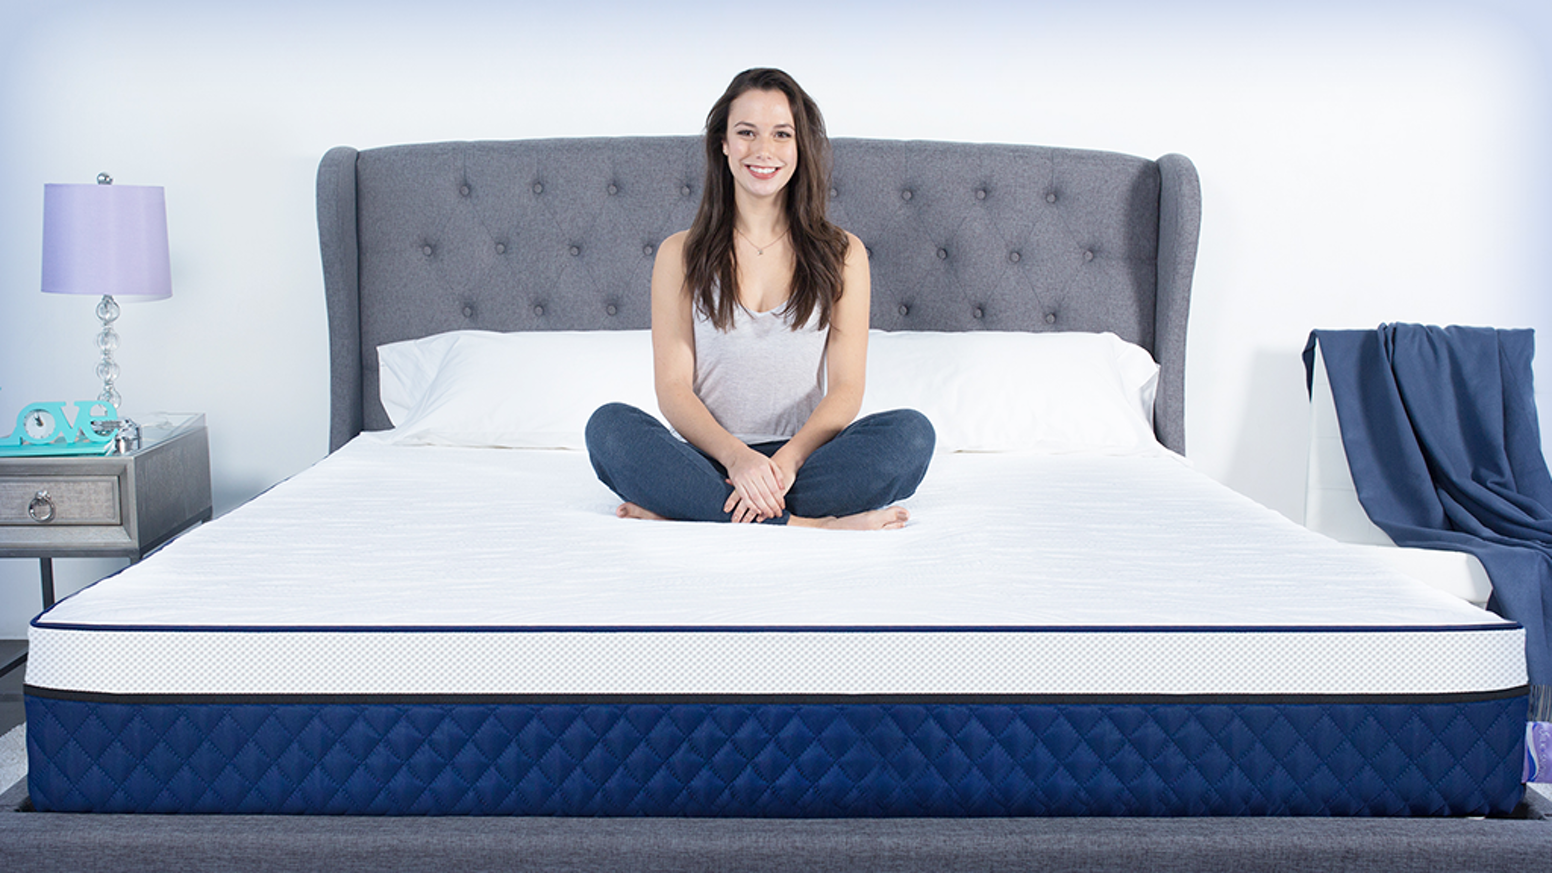 Our premium foam mattress uses the science of silver to prevent the growth of unwanted bacteria while you sleep.